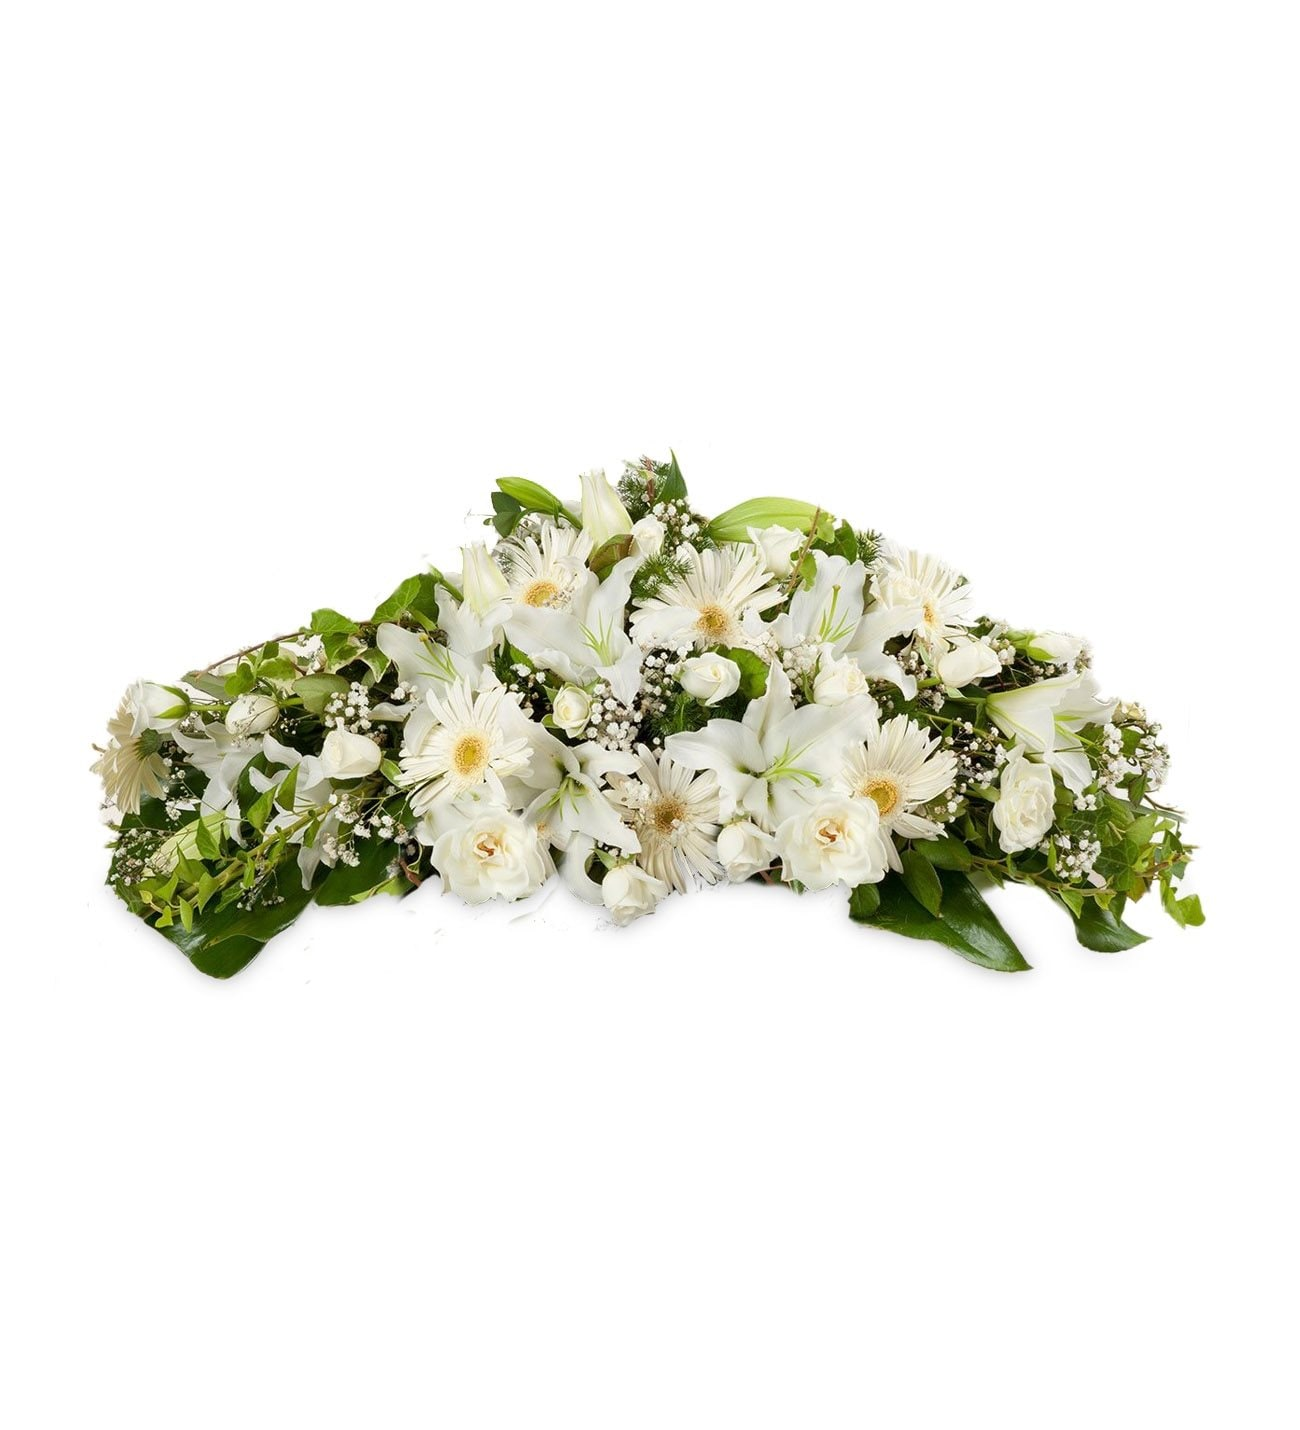 White Flower Funeral Coffin Casket Lolaflora